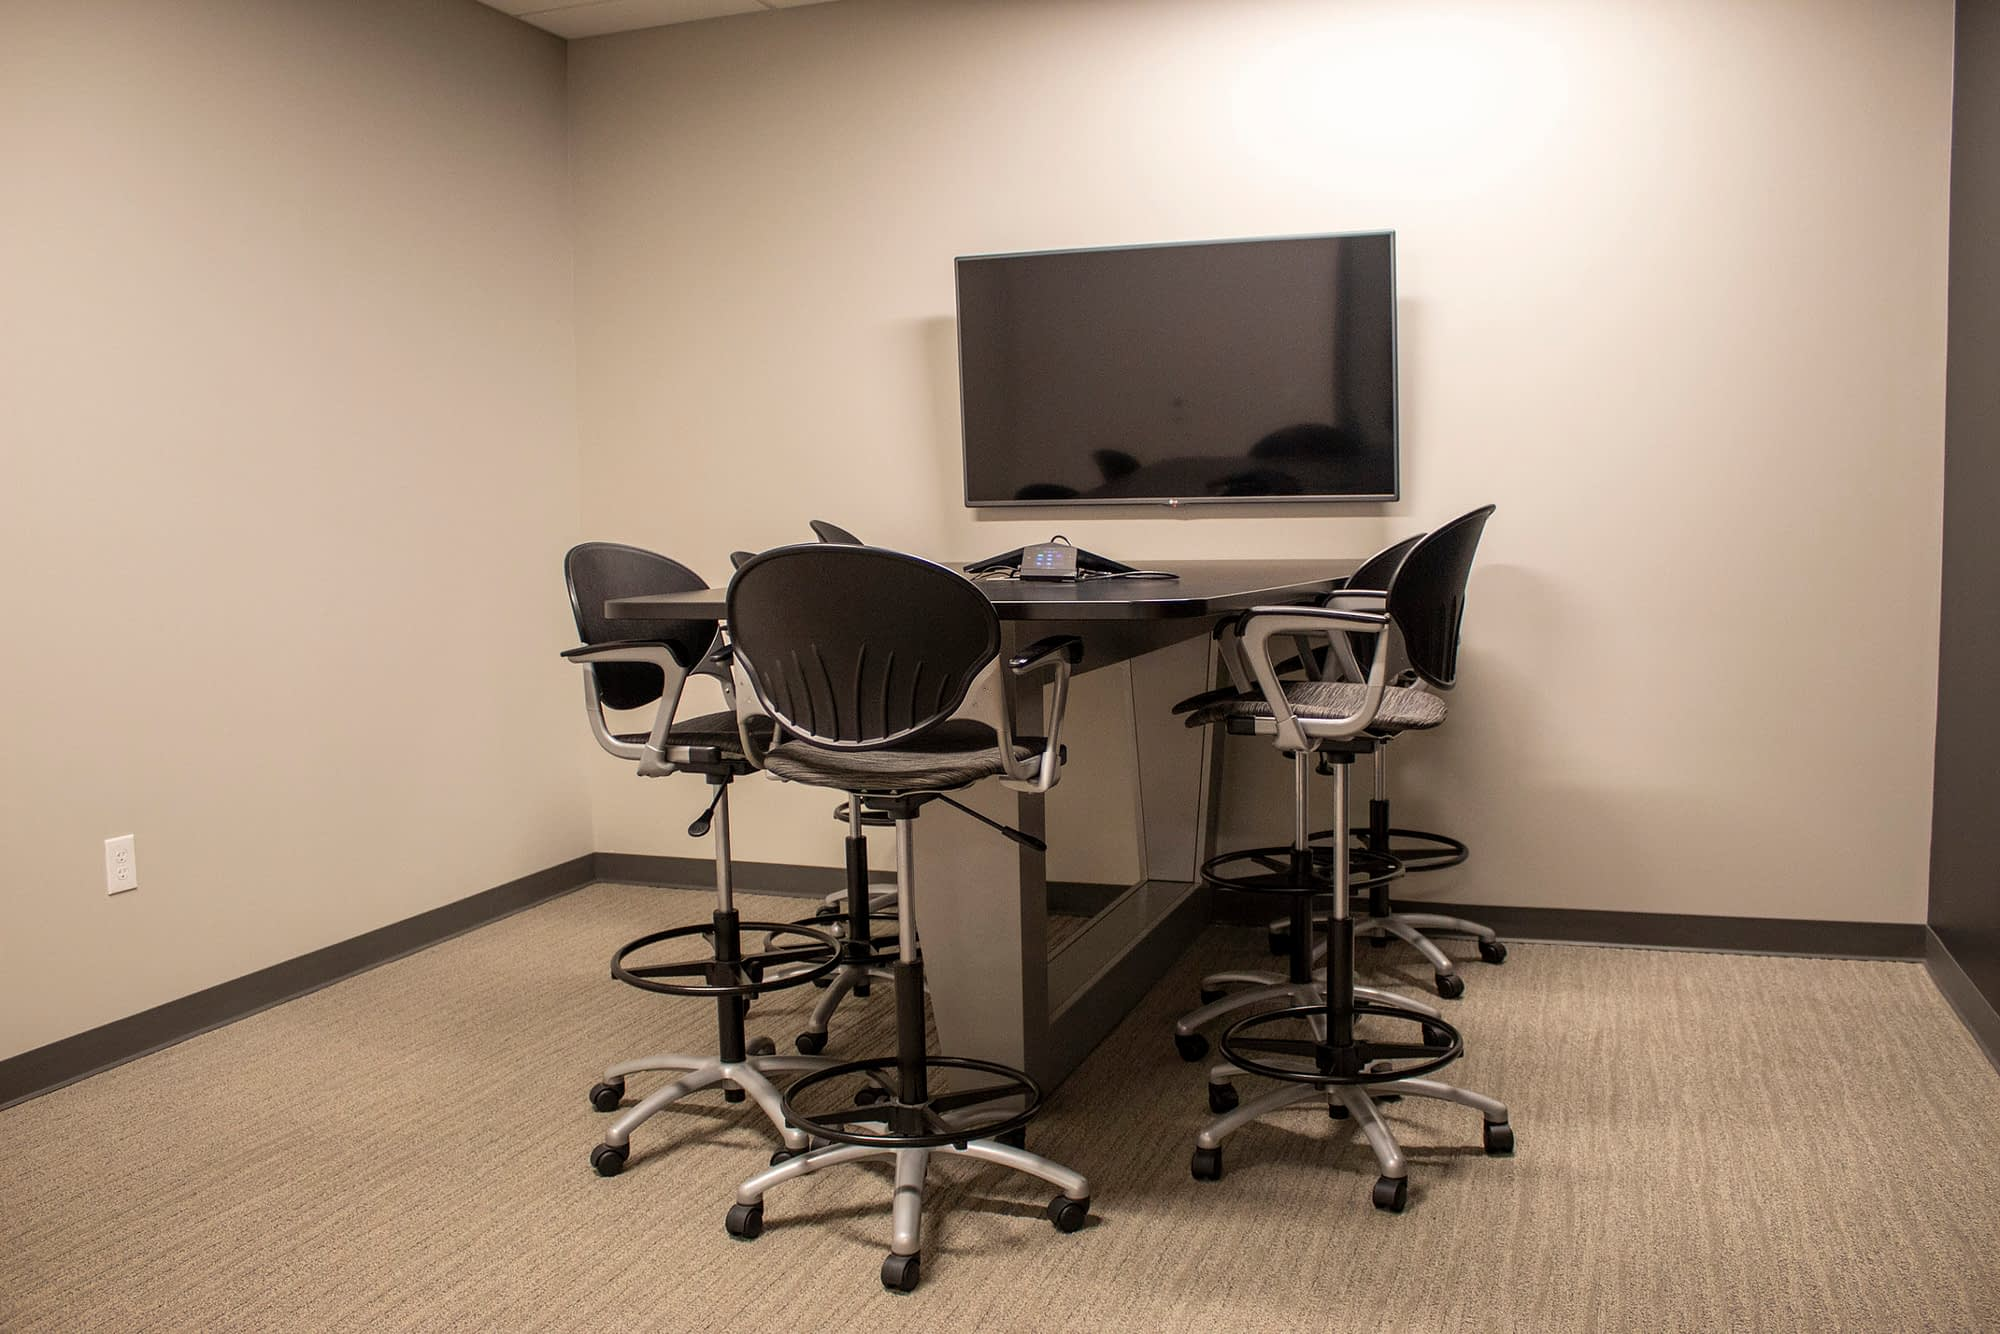 small conference room with standing height table and chairs and media center